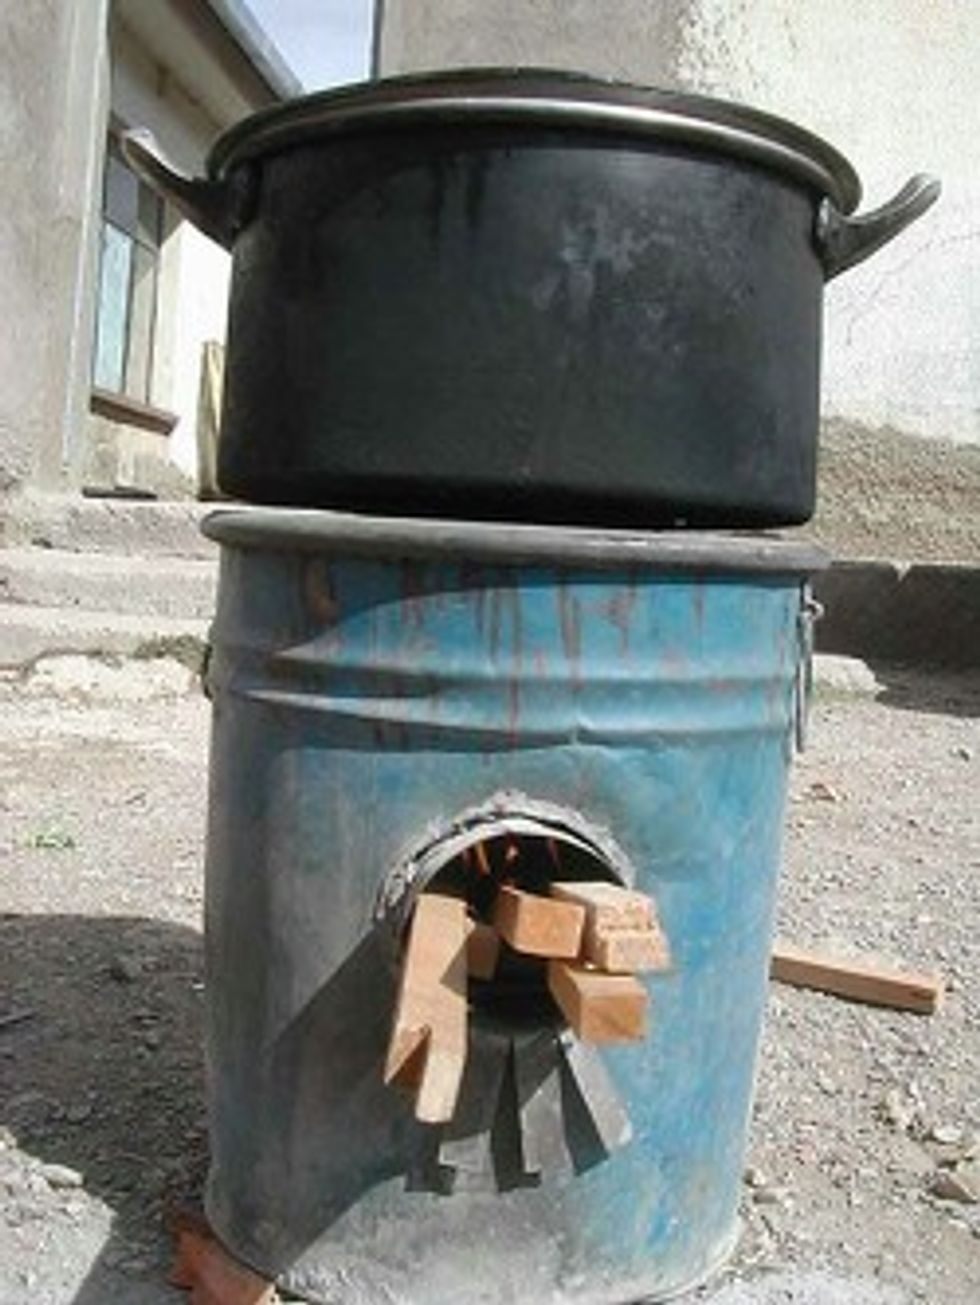 Rocket Stove Launches Third World Into Green Orbit